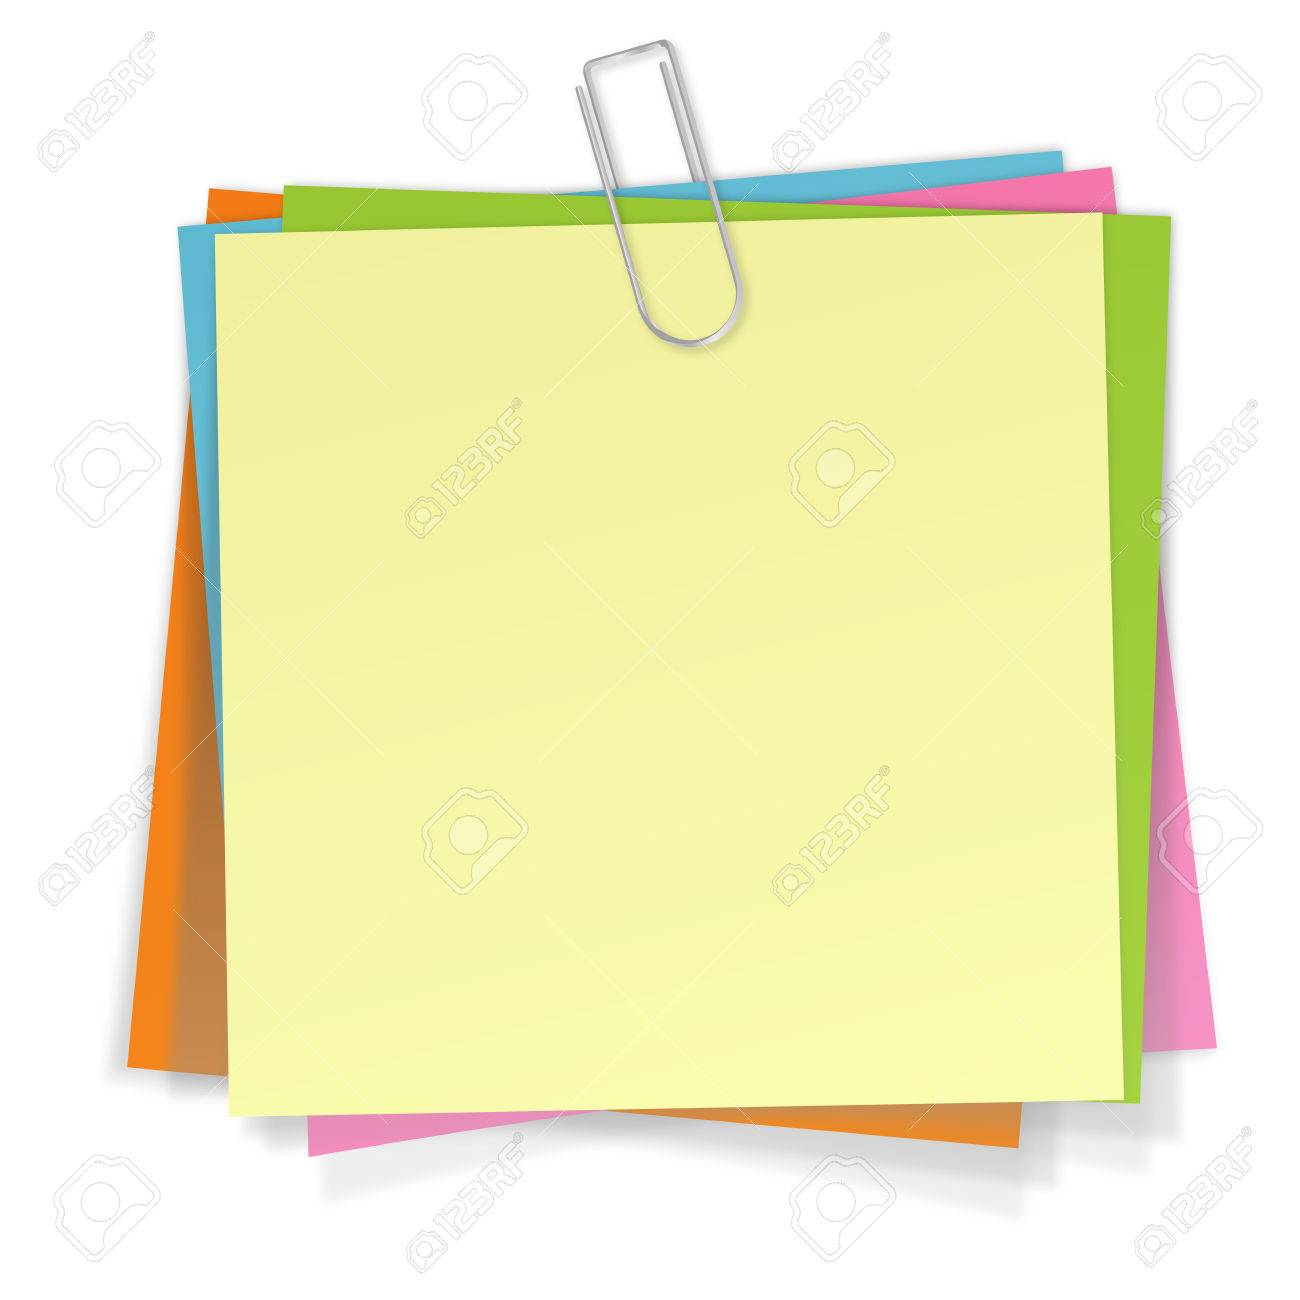 Sticky Notes in different colors with silver paper clip.